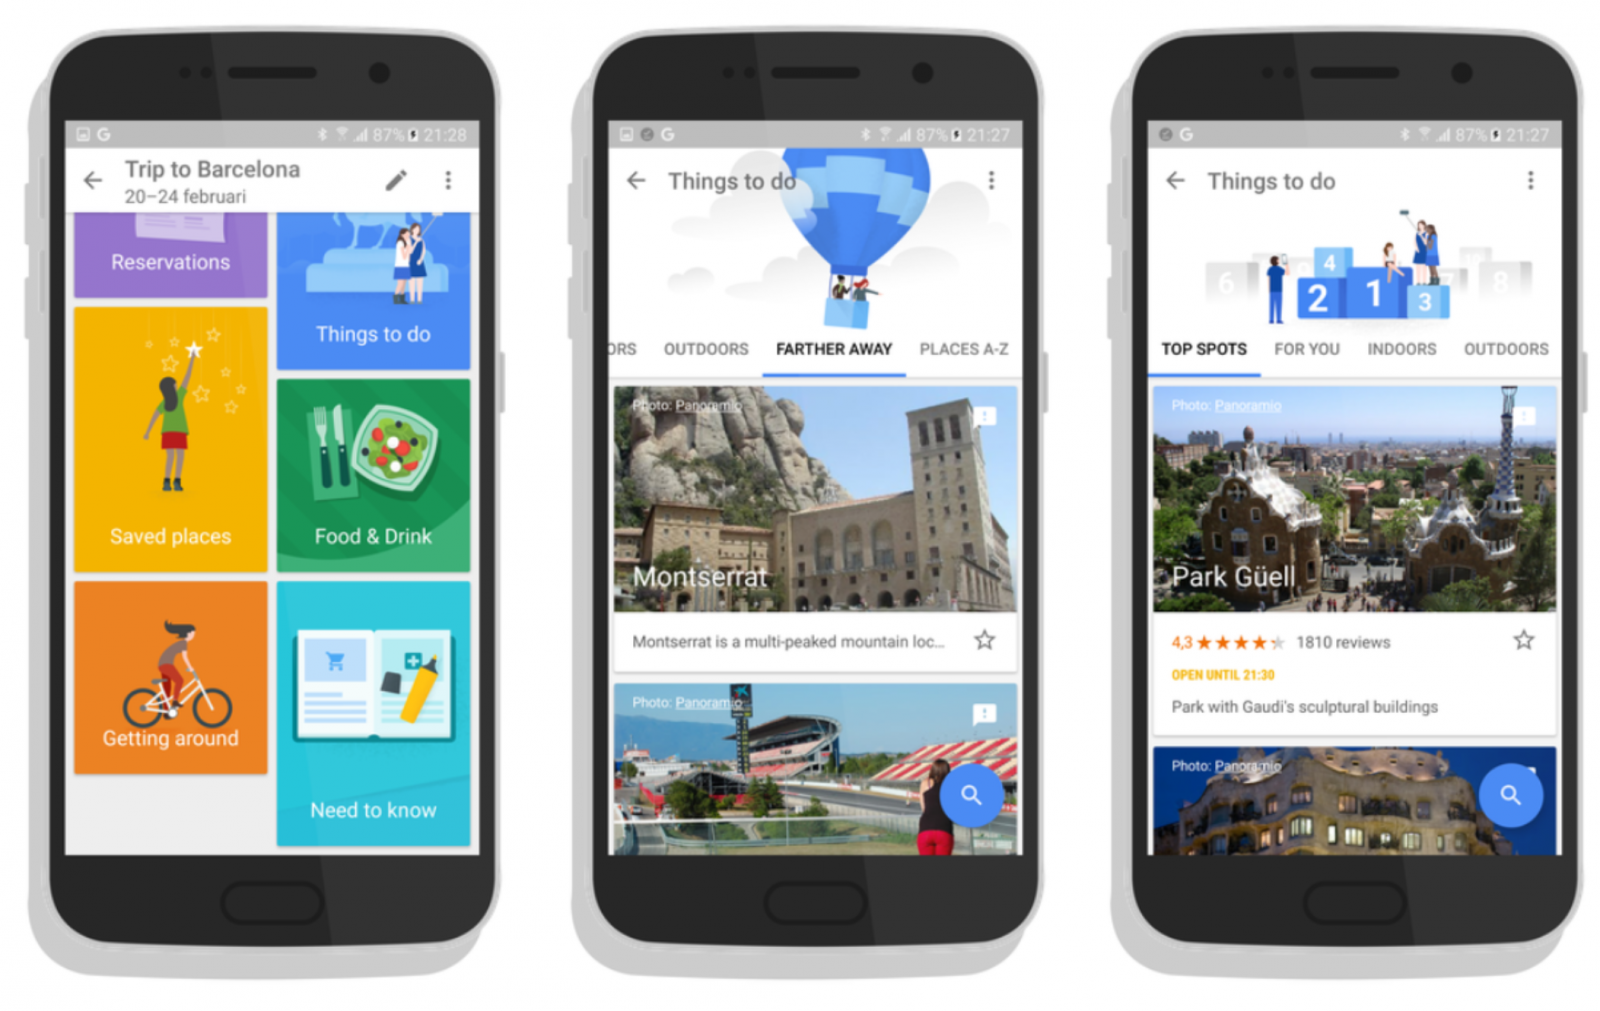 Google Trips app will help you plan your next vacation